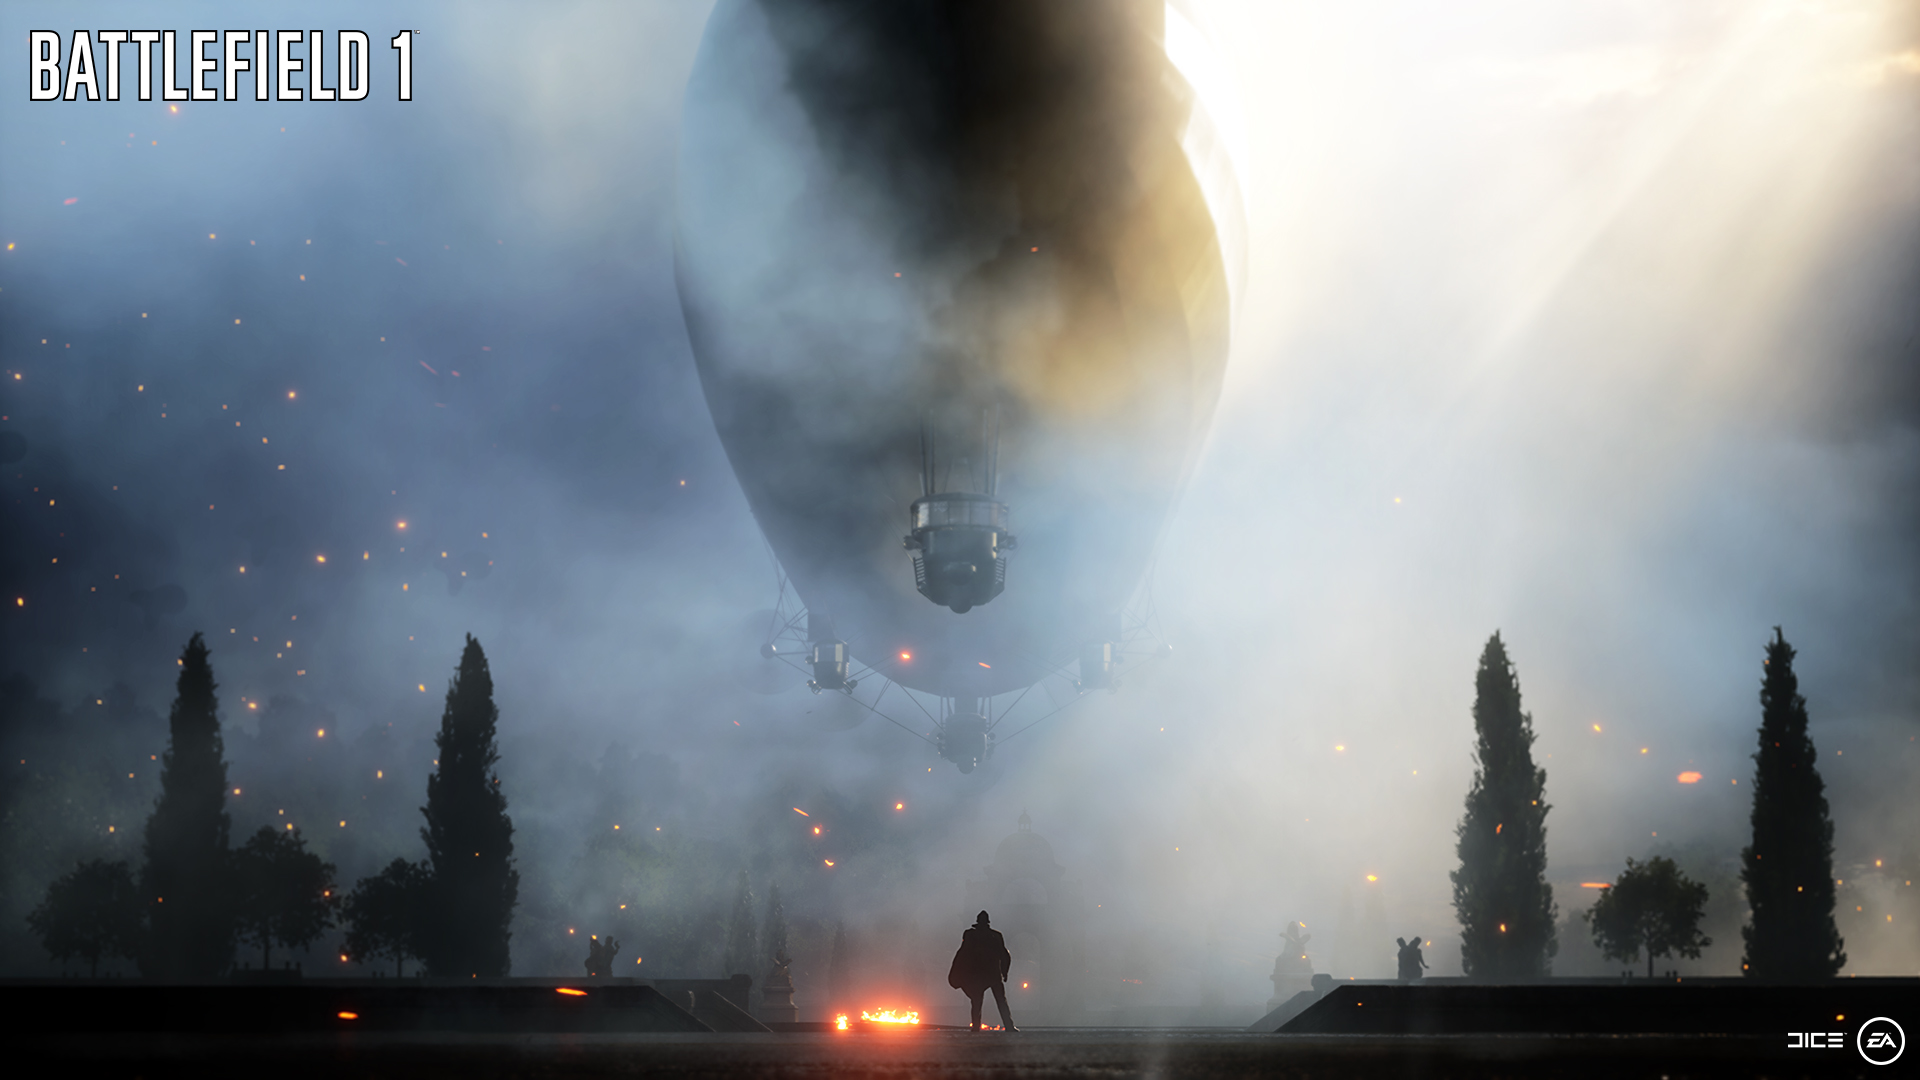 Battlefield 1 - The Great War gets the DICE treatment